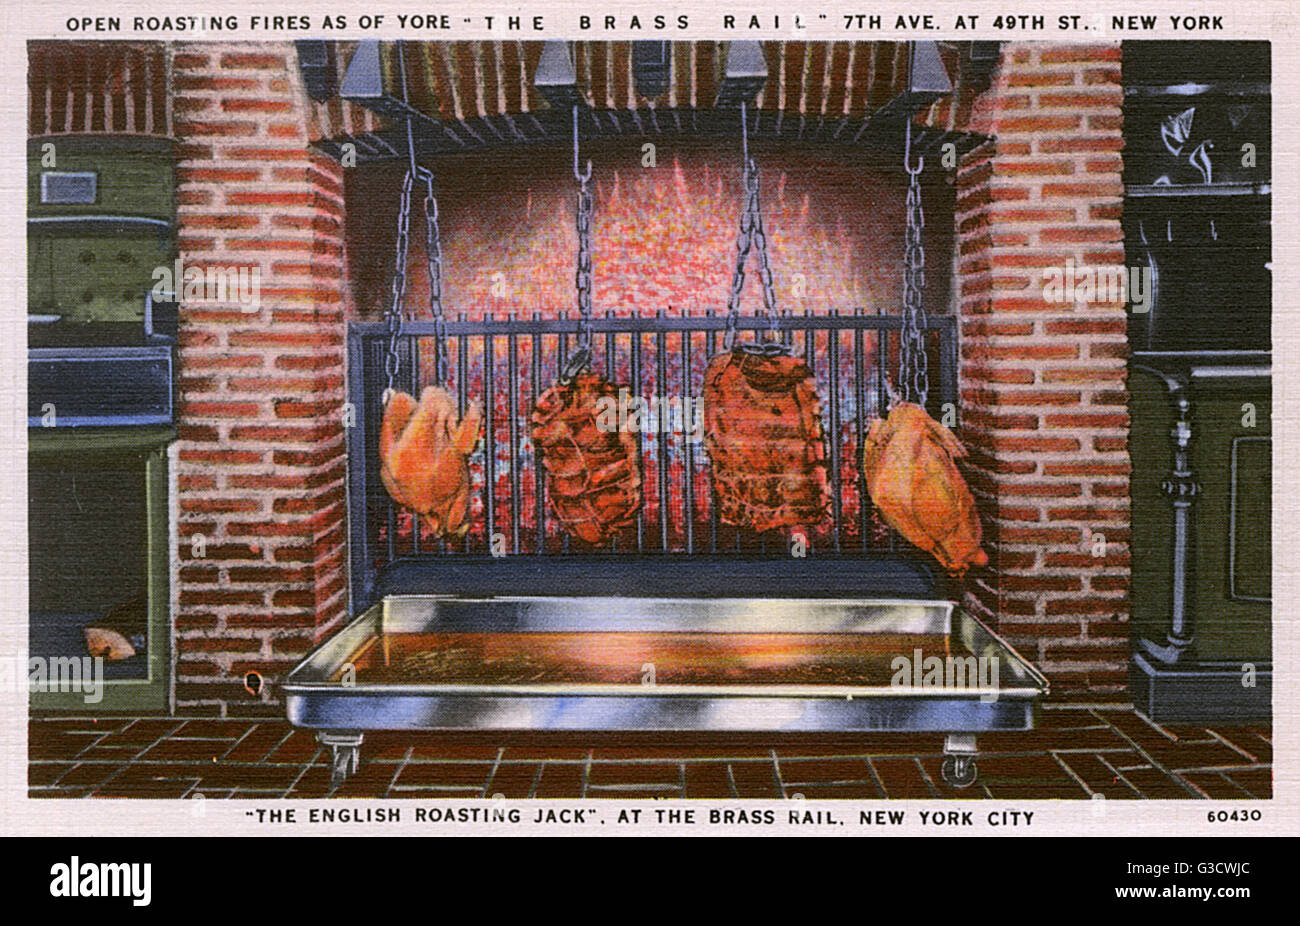 The Brass Rail restaurant, 7th Avenue and 49th Street, New York City, USA, showing meat cooking in front of burning - Stock Image